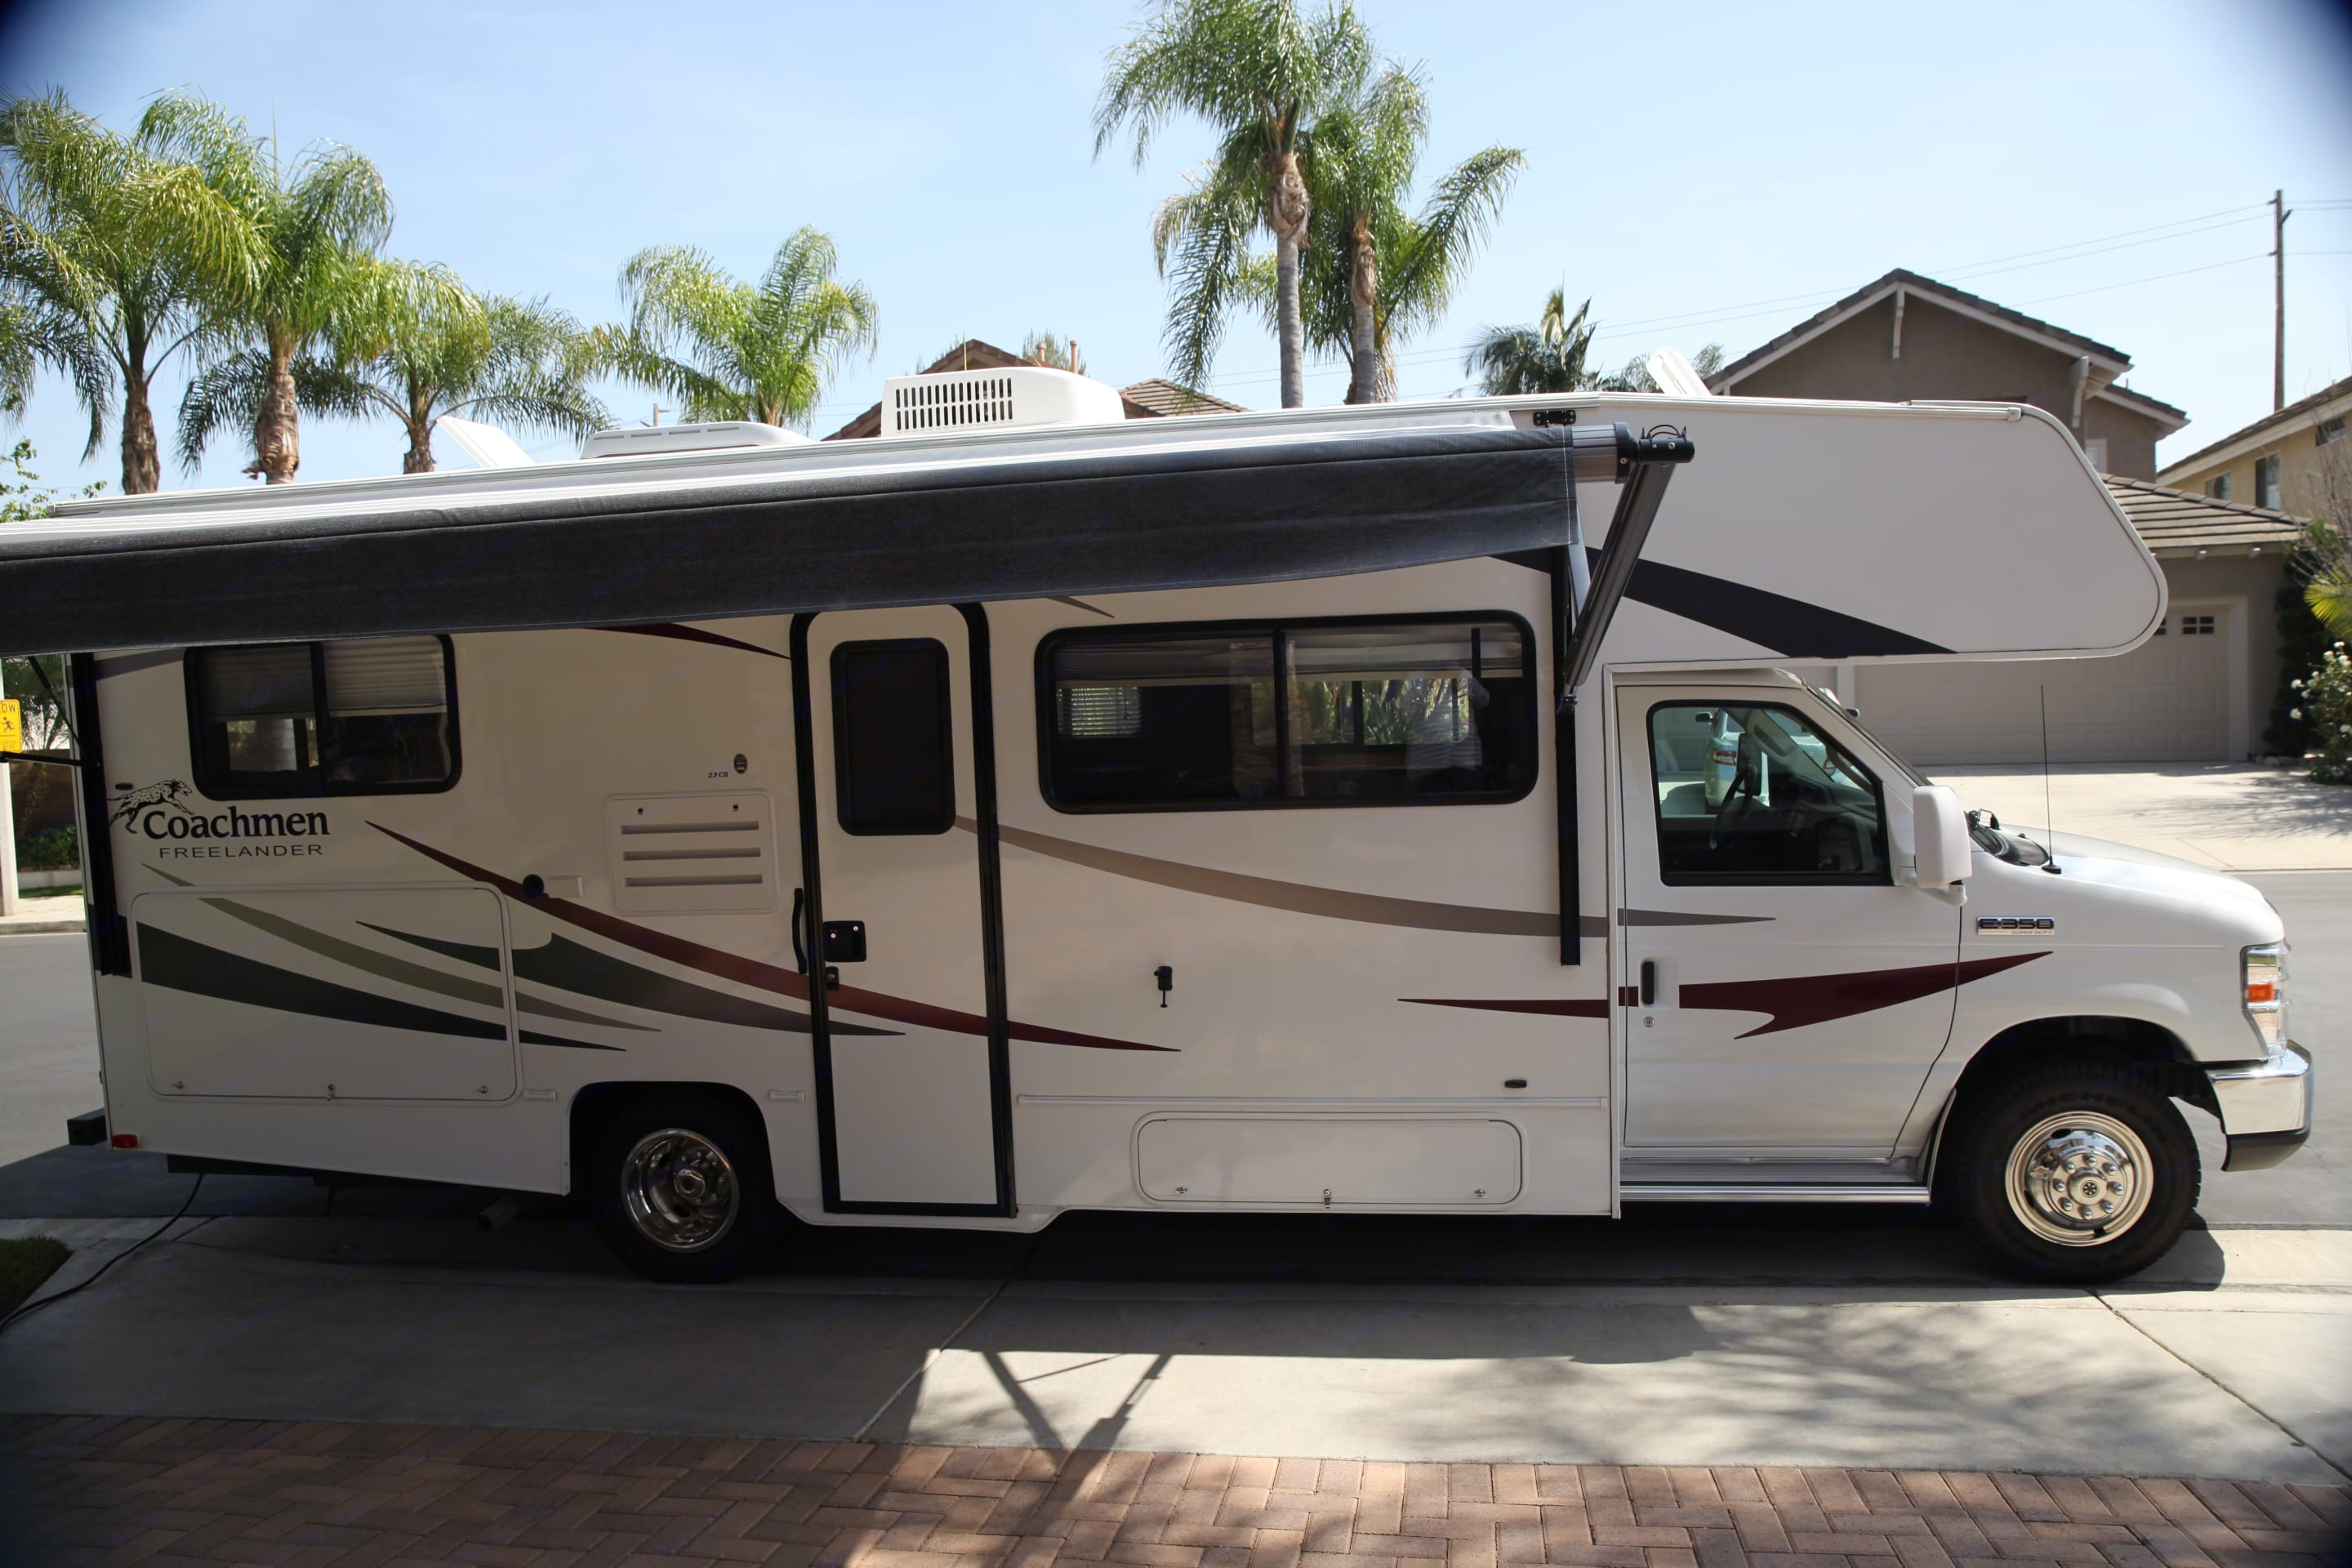 With  Automatic Awning Extended. Coachmen Freelander 2012